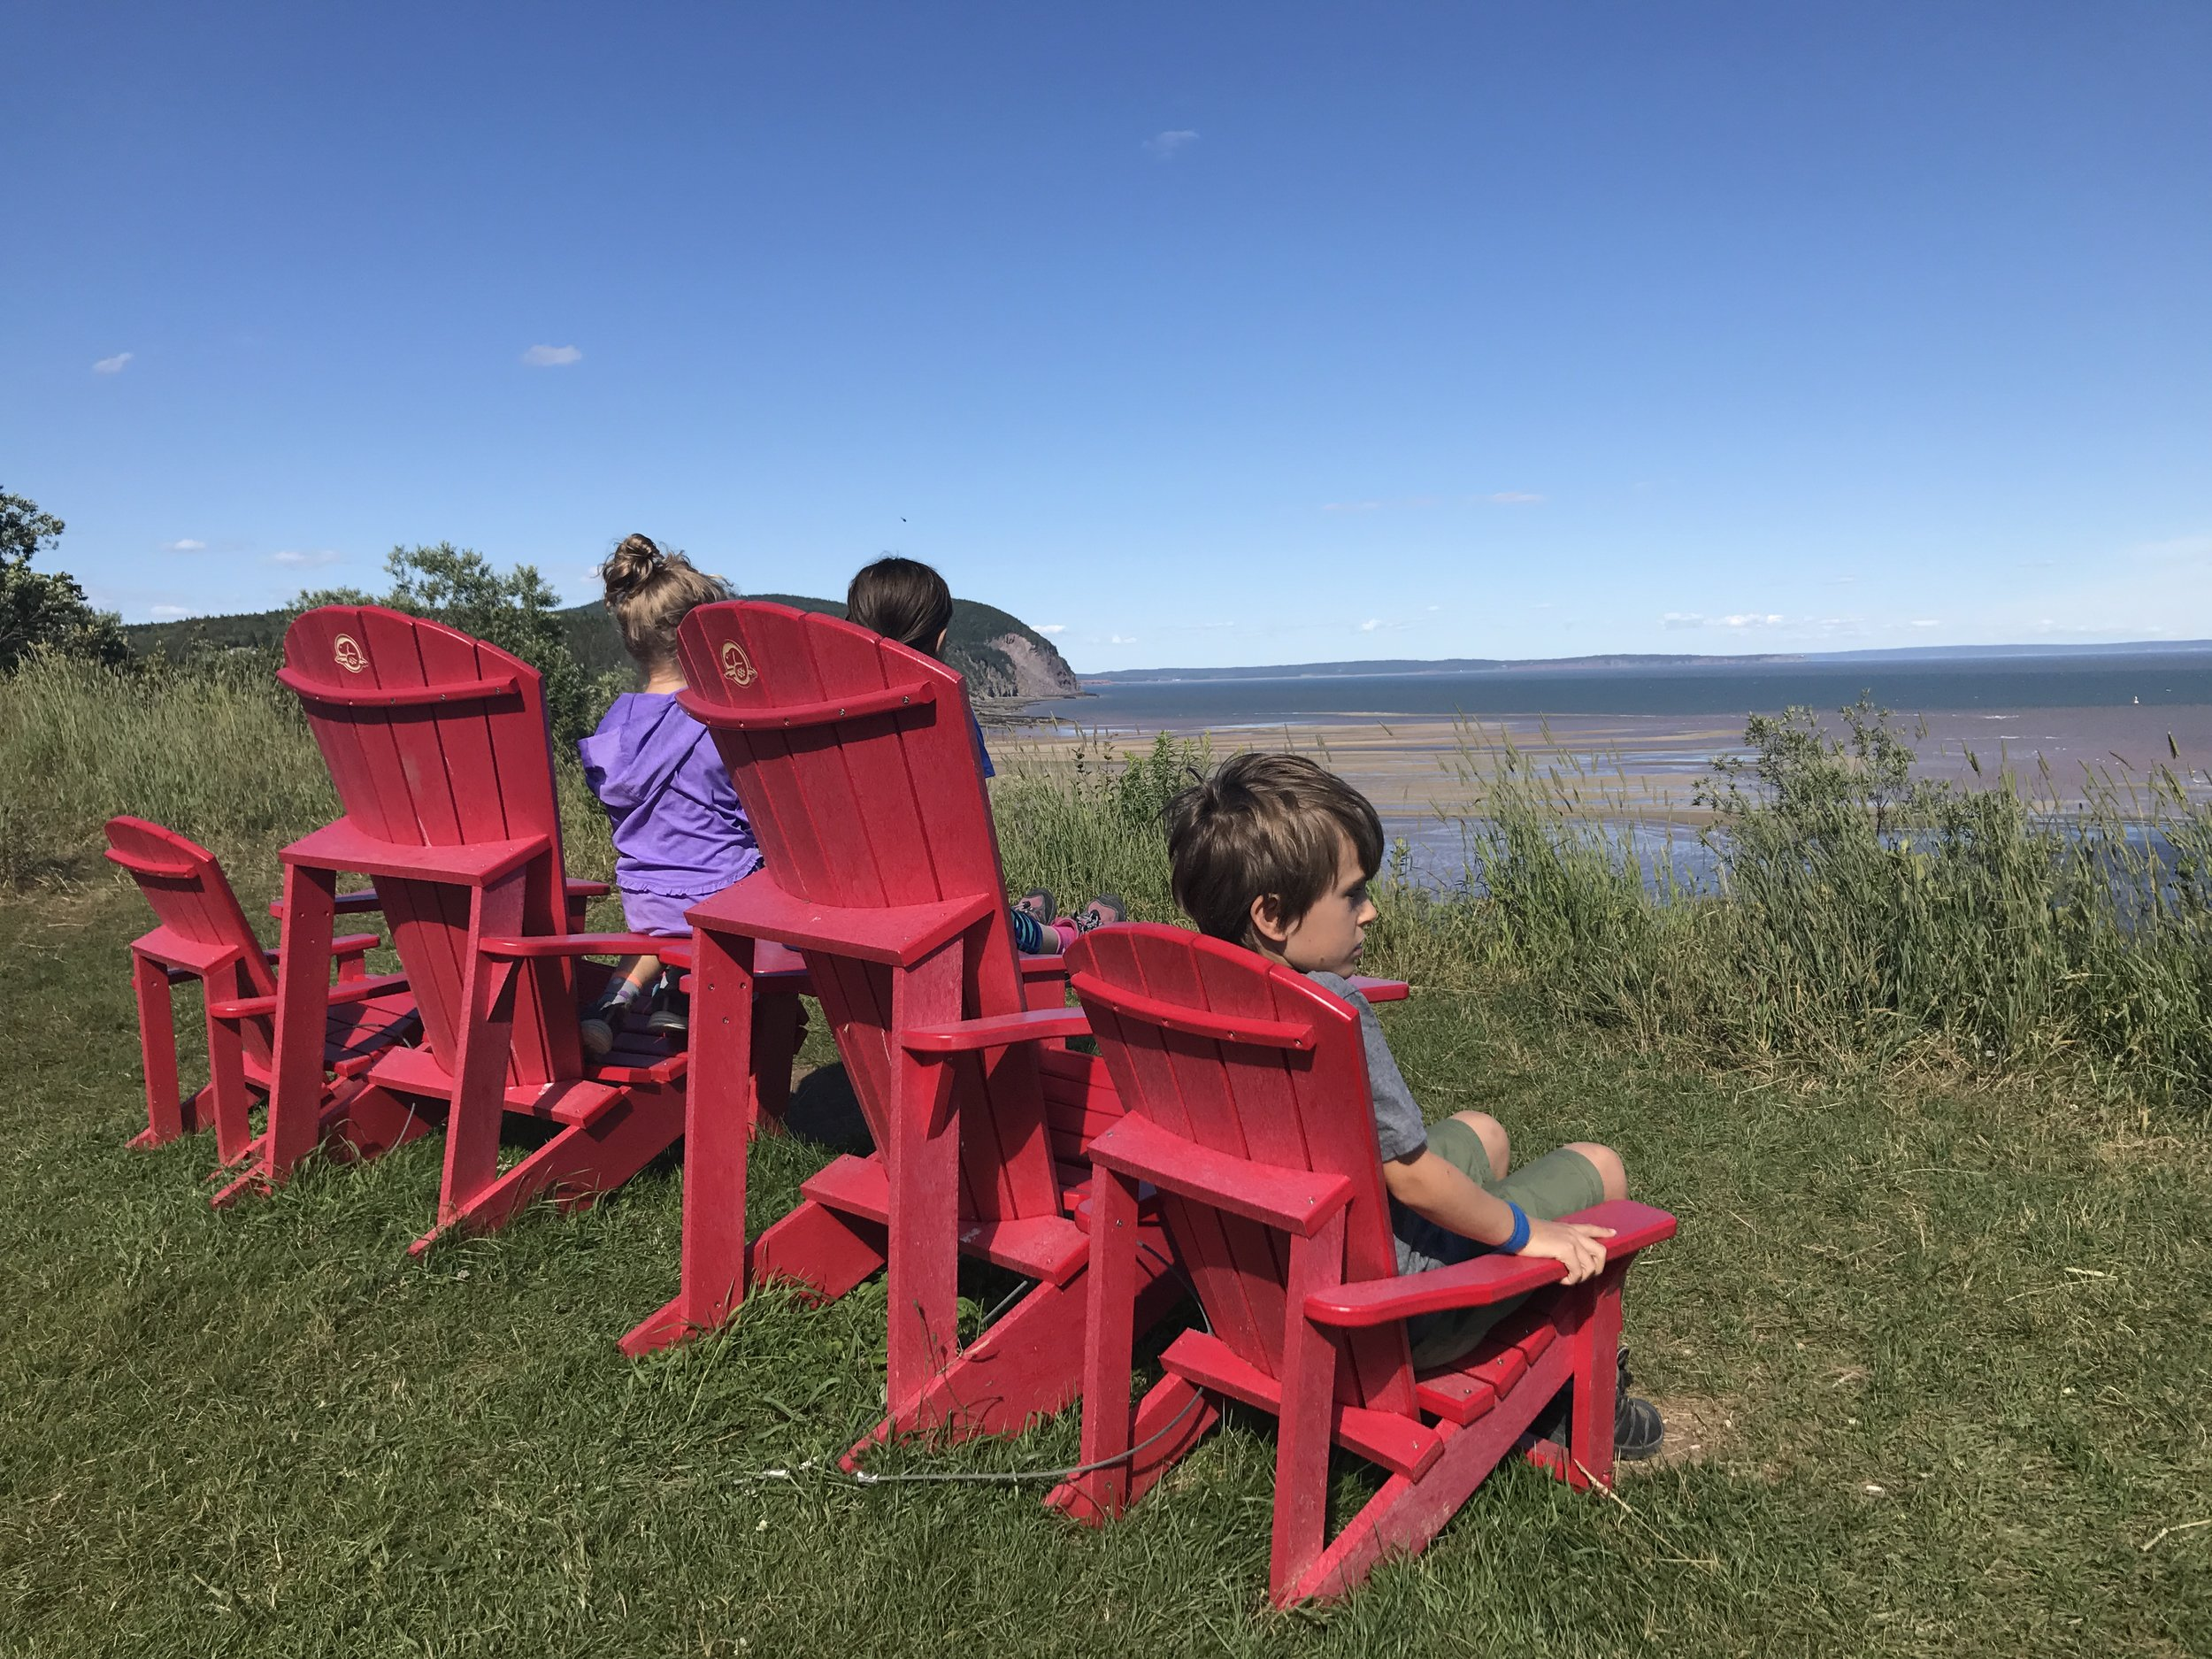 Wonderful views of the Bay of Fundy from these chairs parked in Fundy National Park, New Brunswick. The kids and I thought that they may have received the Cape-Breton Highland's National Park's shipment of chairs since we saw many in Fundy, and none in the Highland's. Guess we've got to leave some hunting for next time!